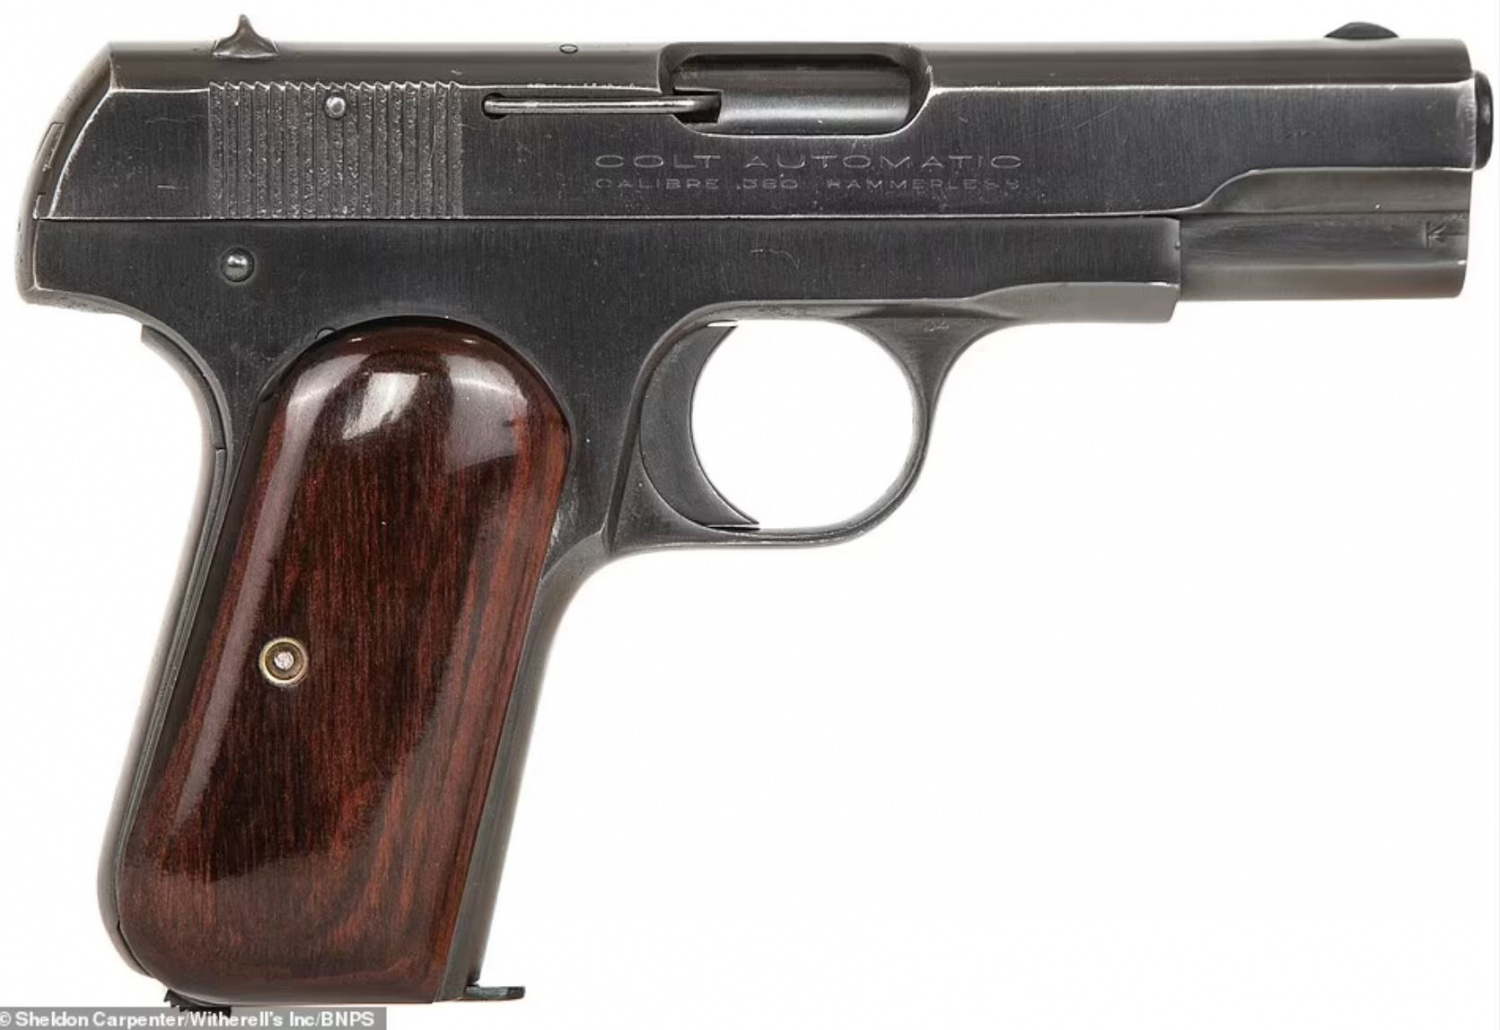 Sweetheart Colt 1911 of Al Capone's Sells for 3.1 Million